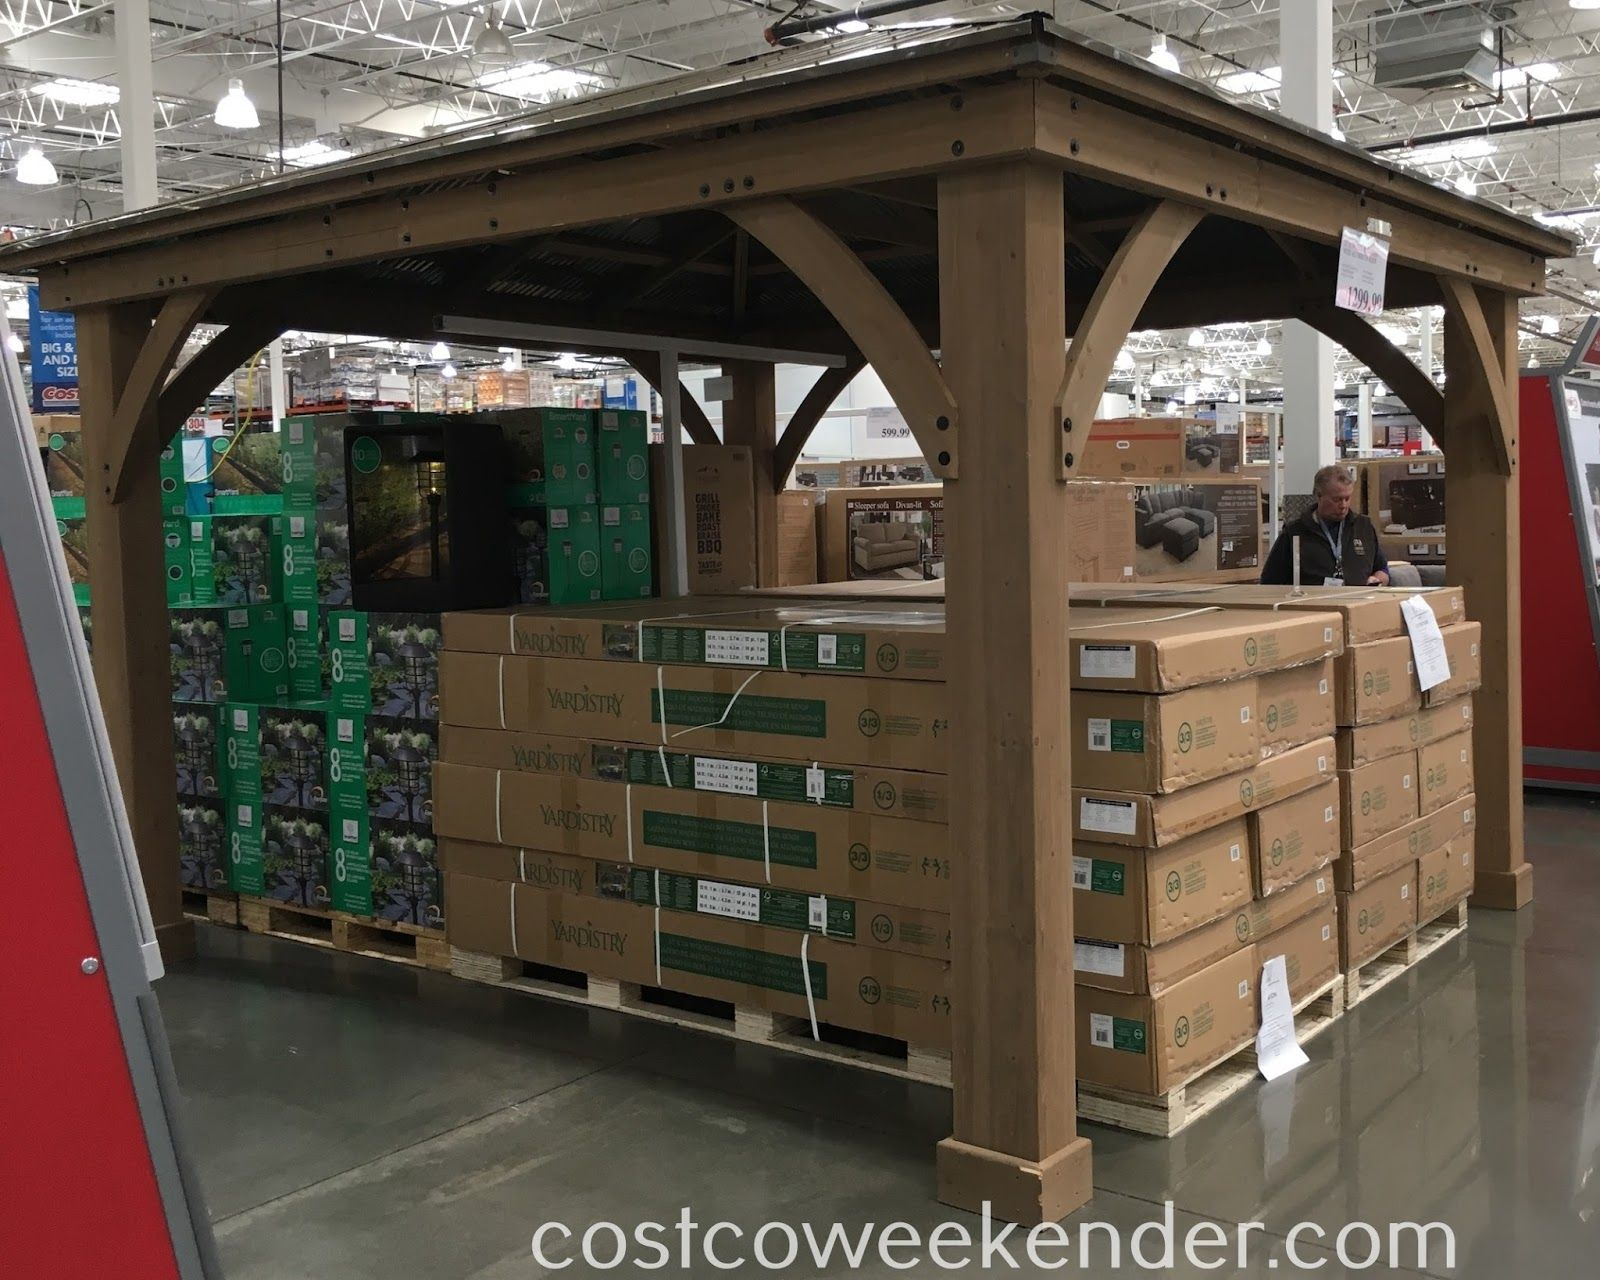 Cedar Wood Gazebo With Aluminum Roof 12x12 The Gazebo Is A Pavilion Construction That Has Been Used For Many Years Costco Gazebo Aluminum Roof Wooden Gazebo